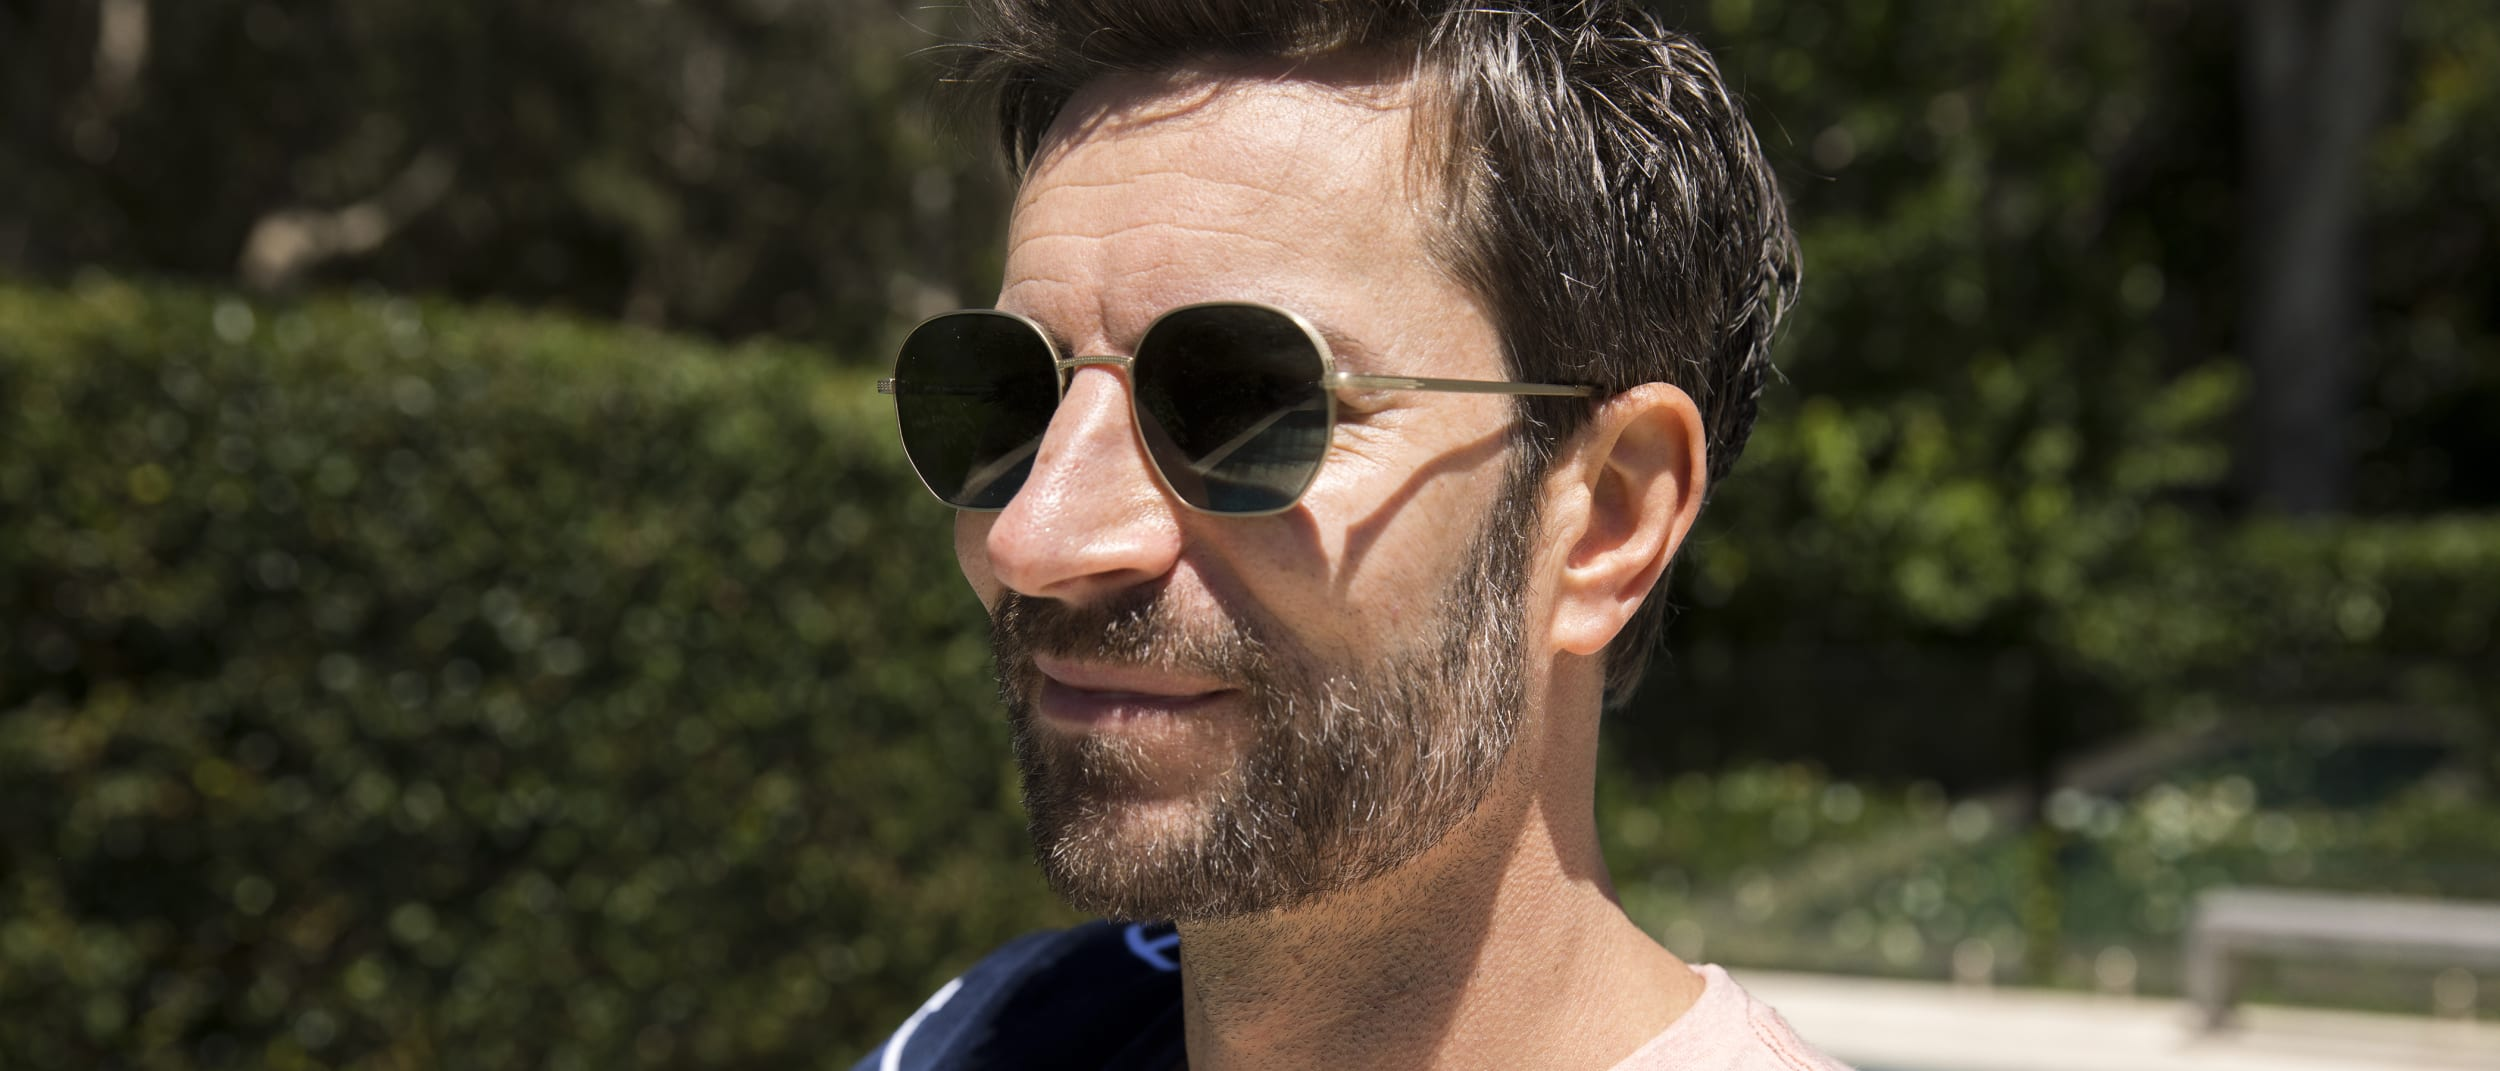 Three sunglass styles to try this season